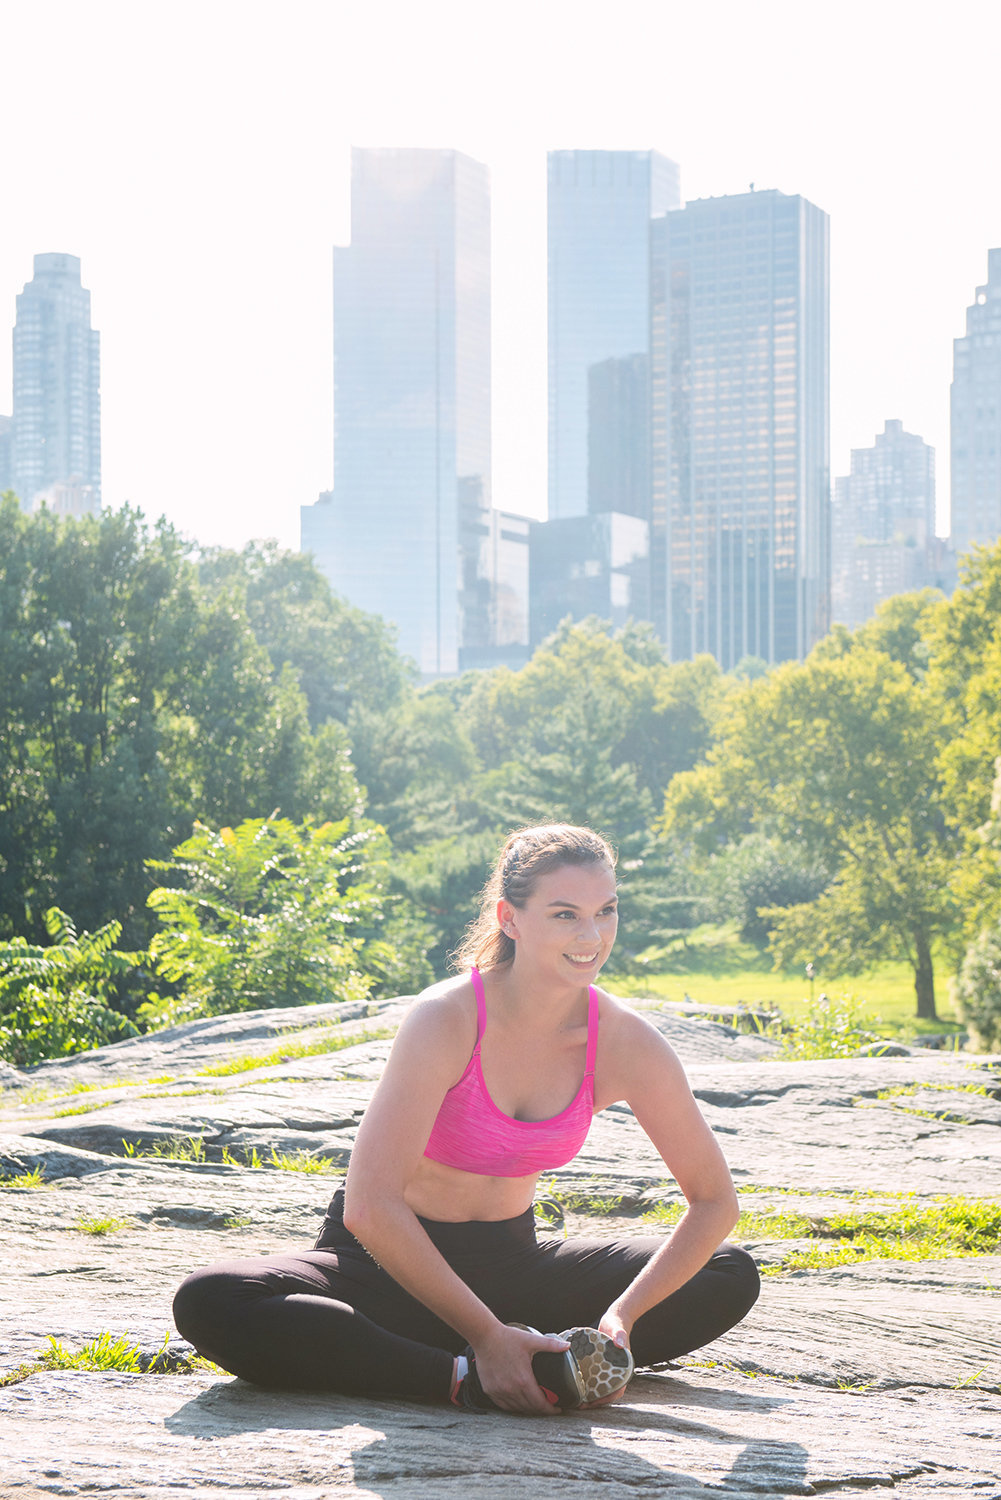 woman central park new york butterfly stretch cobblers pose Baddha Konasana Bound Angle Pose